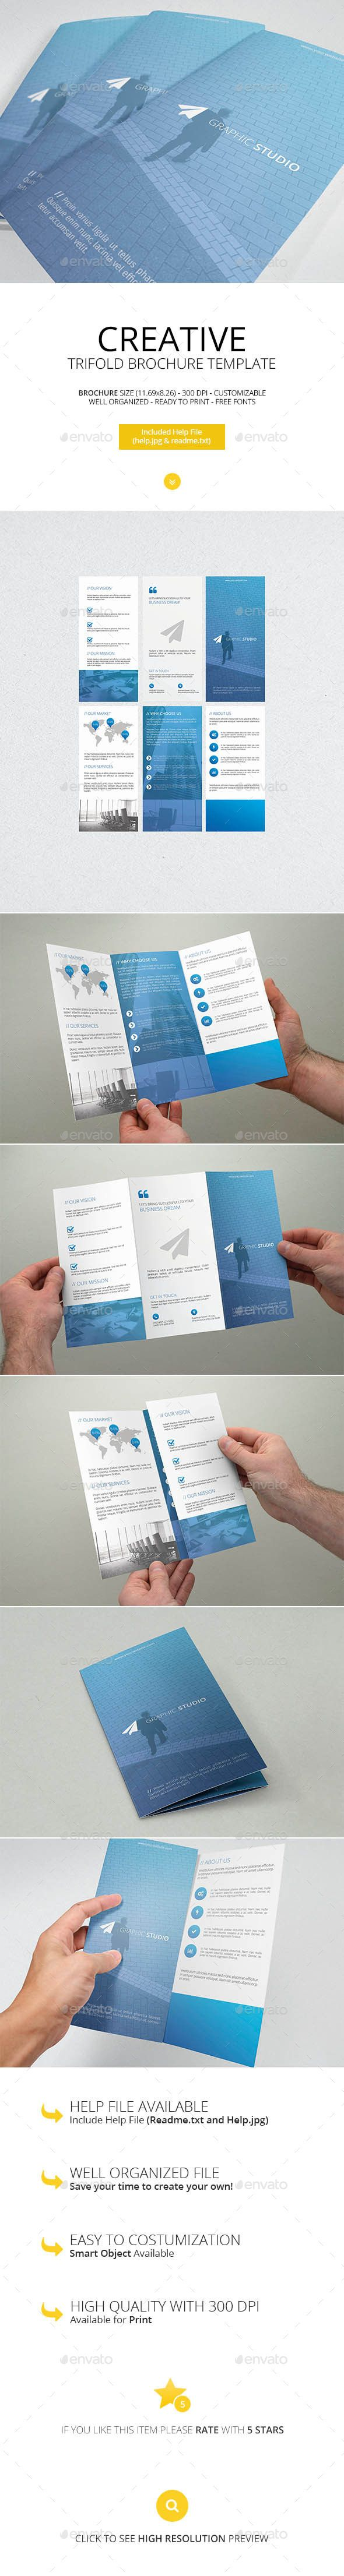 Creative Trifold Brochure Template #design Download: http://graphicriver.net/item/creative-trifold-brochure-template/13229578?ref=ksioks